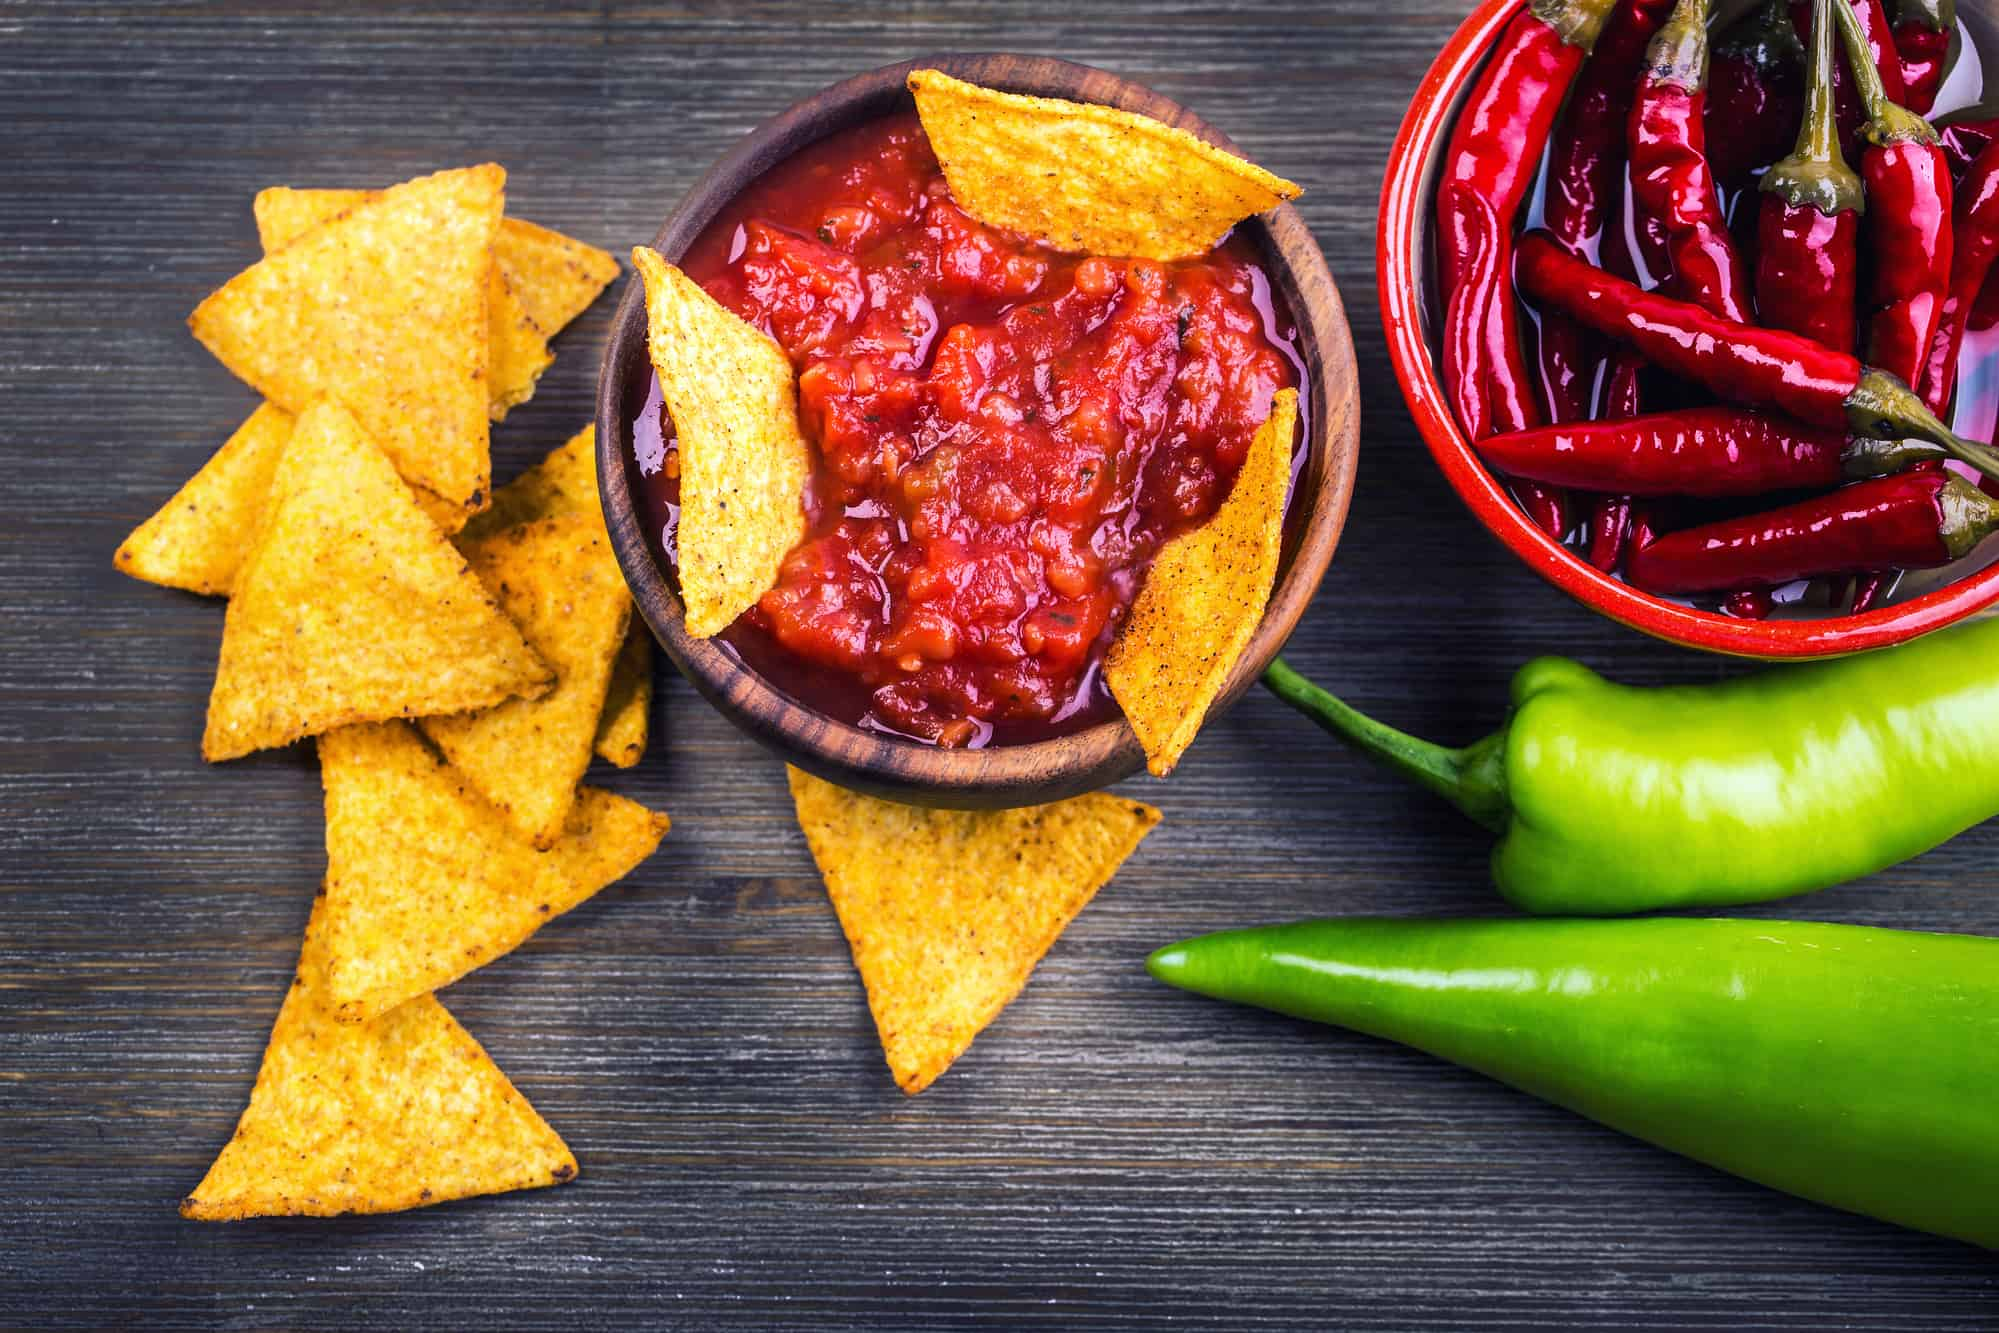 Chips & salsa with hot peppers